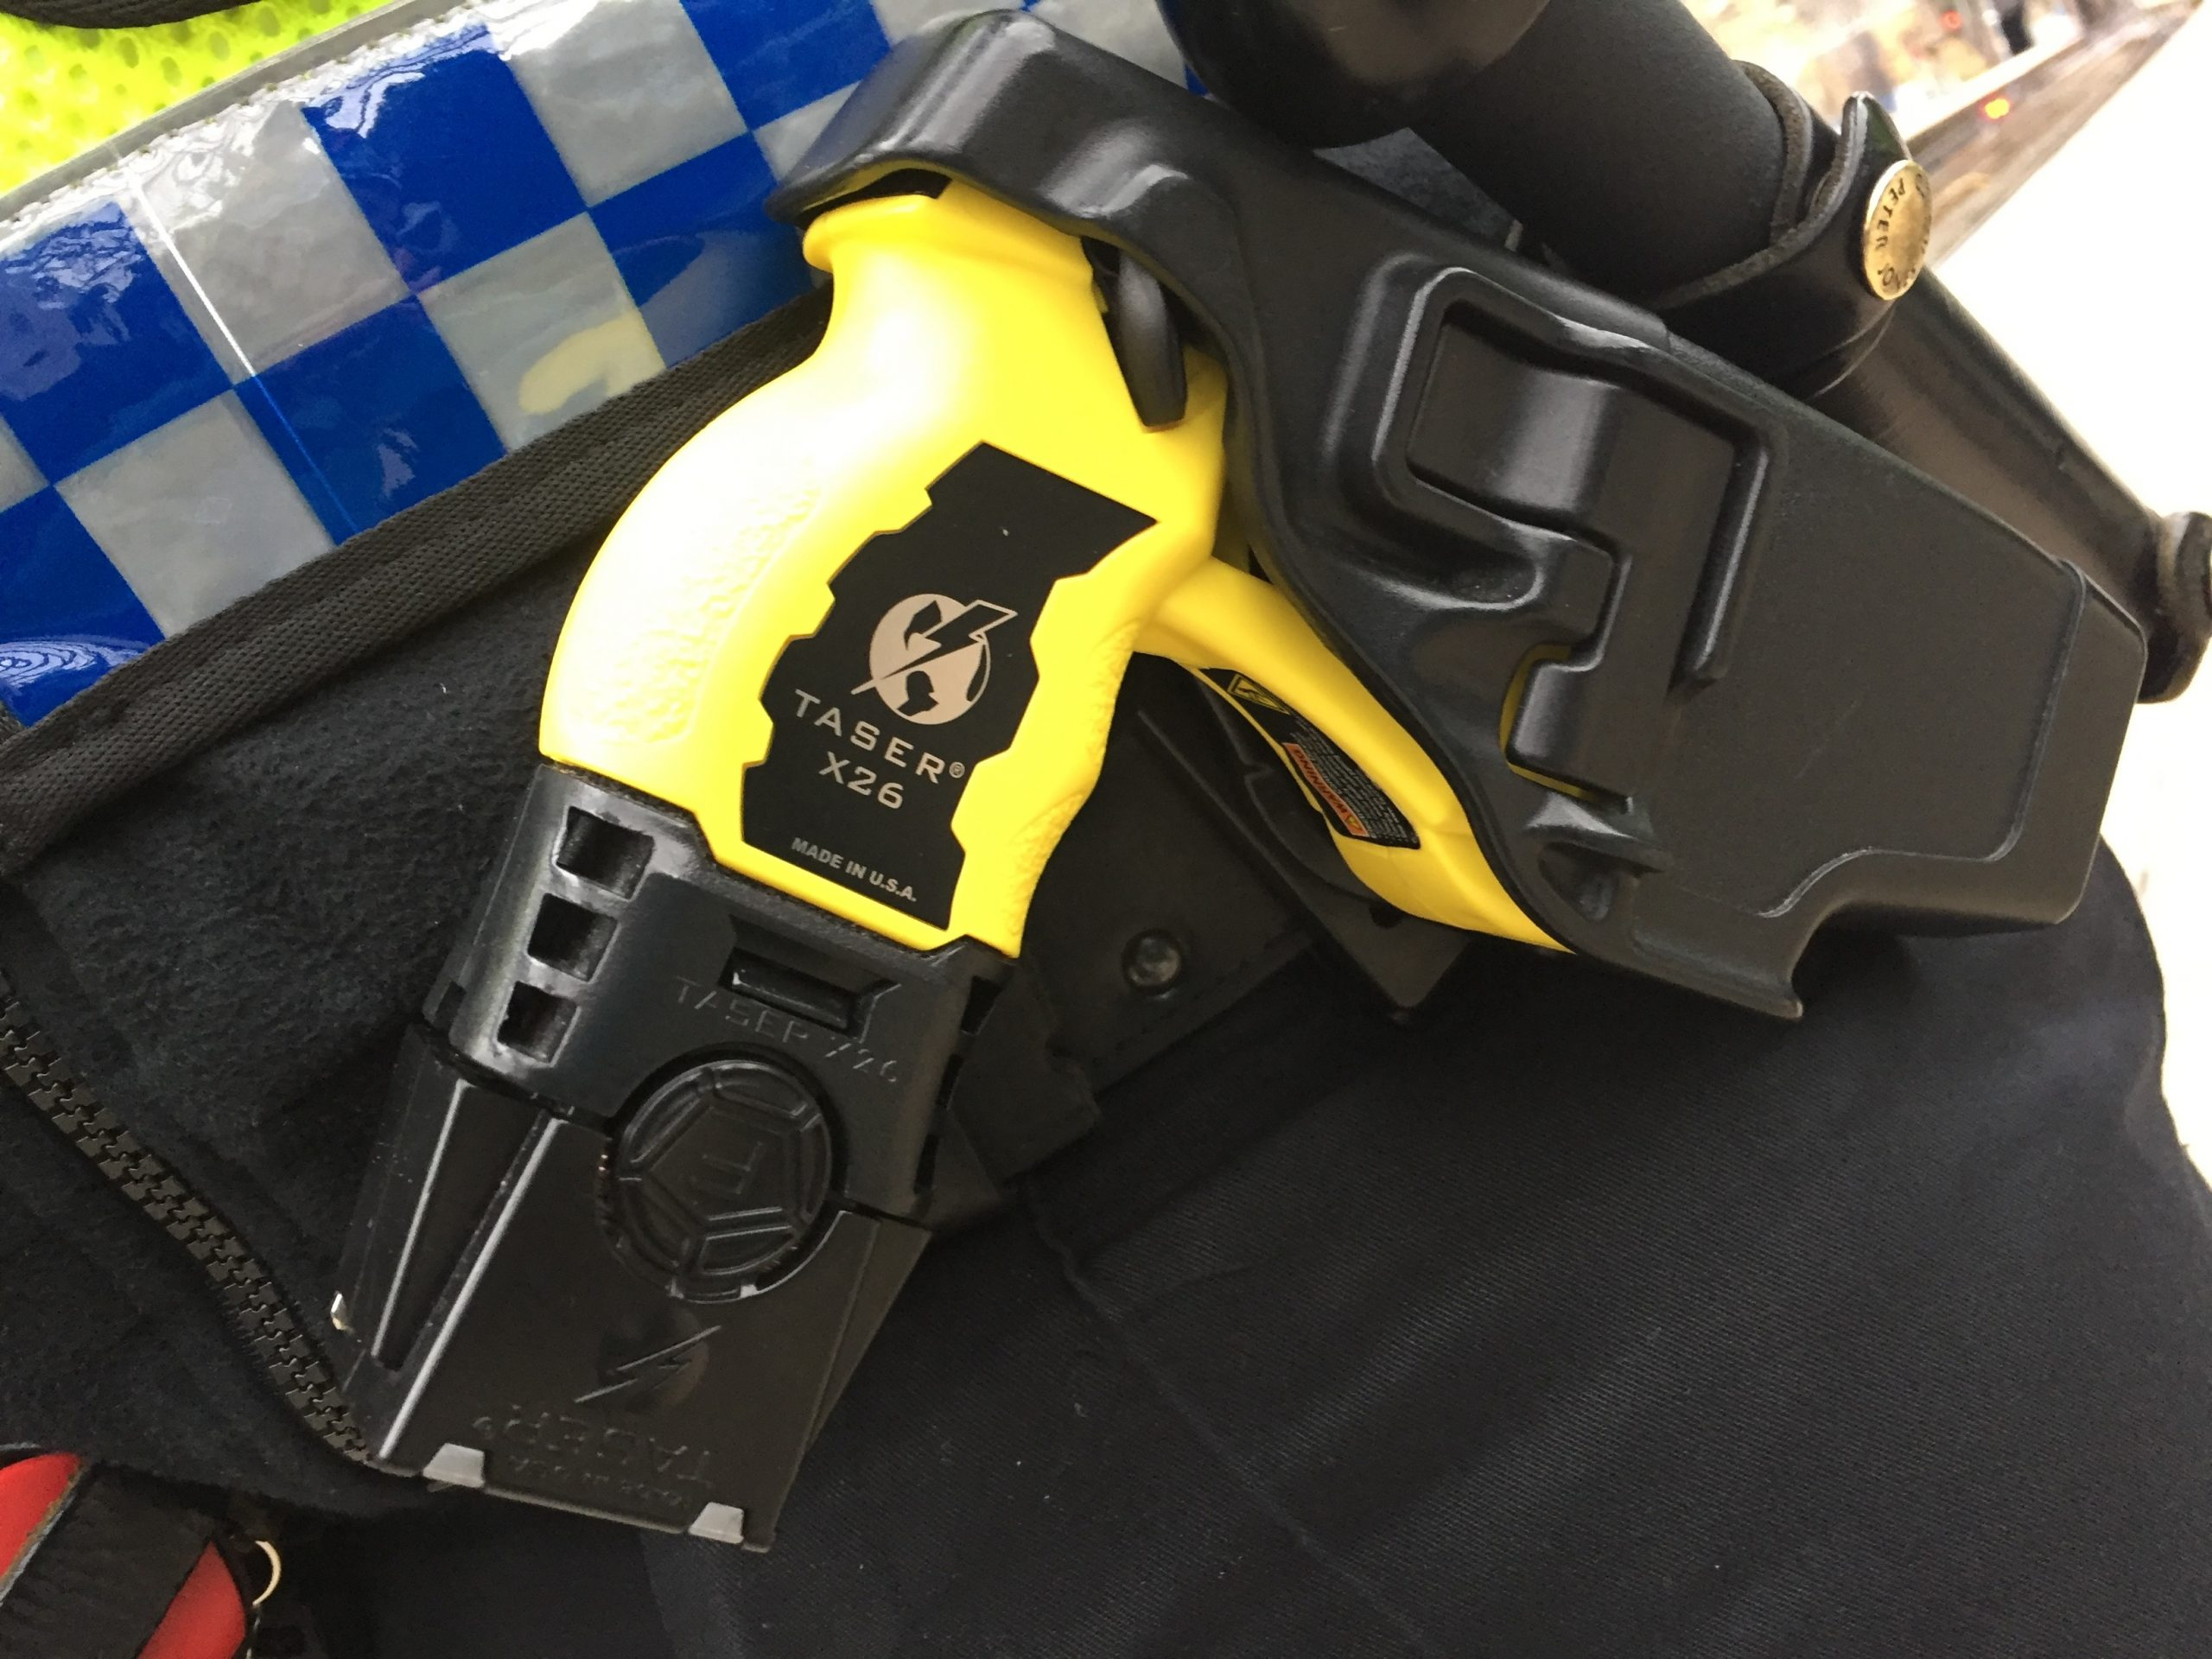 Federation highlights the benefits of Taser for police officers